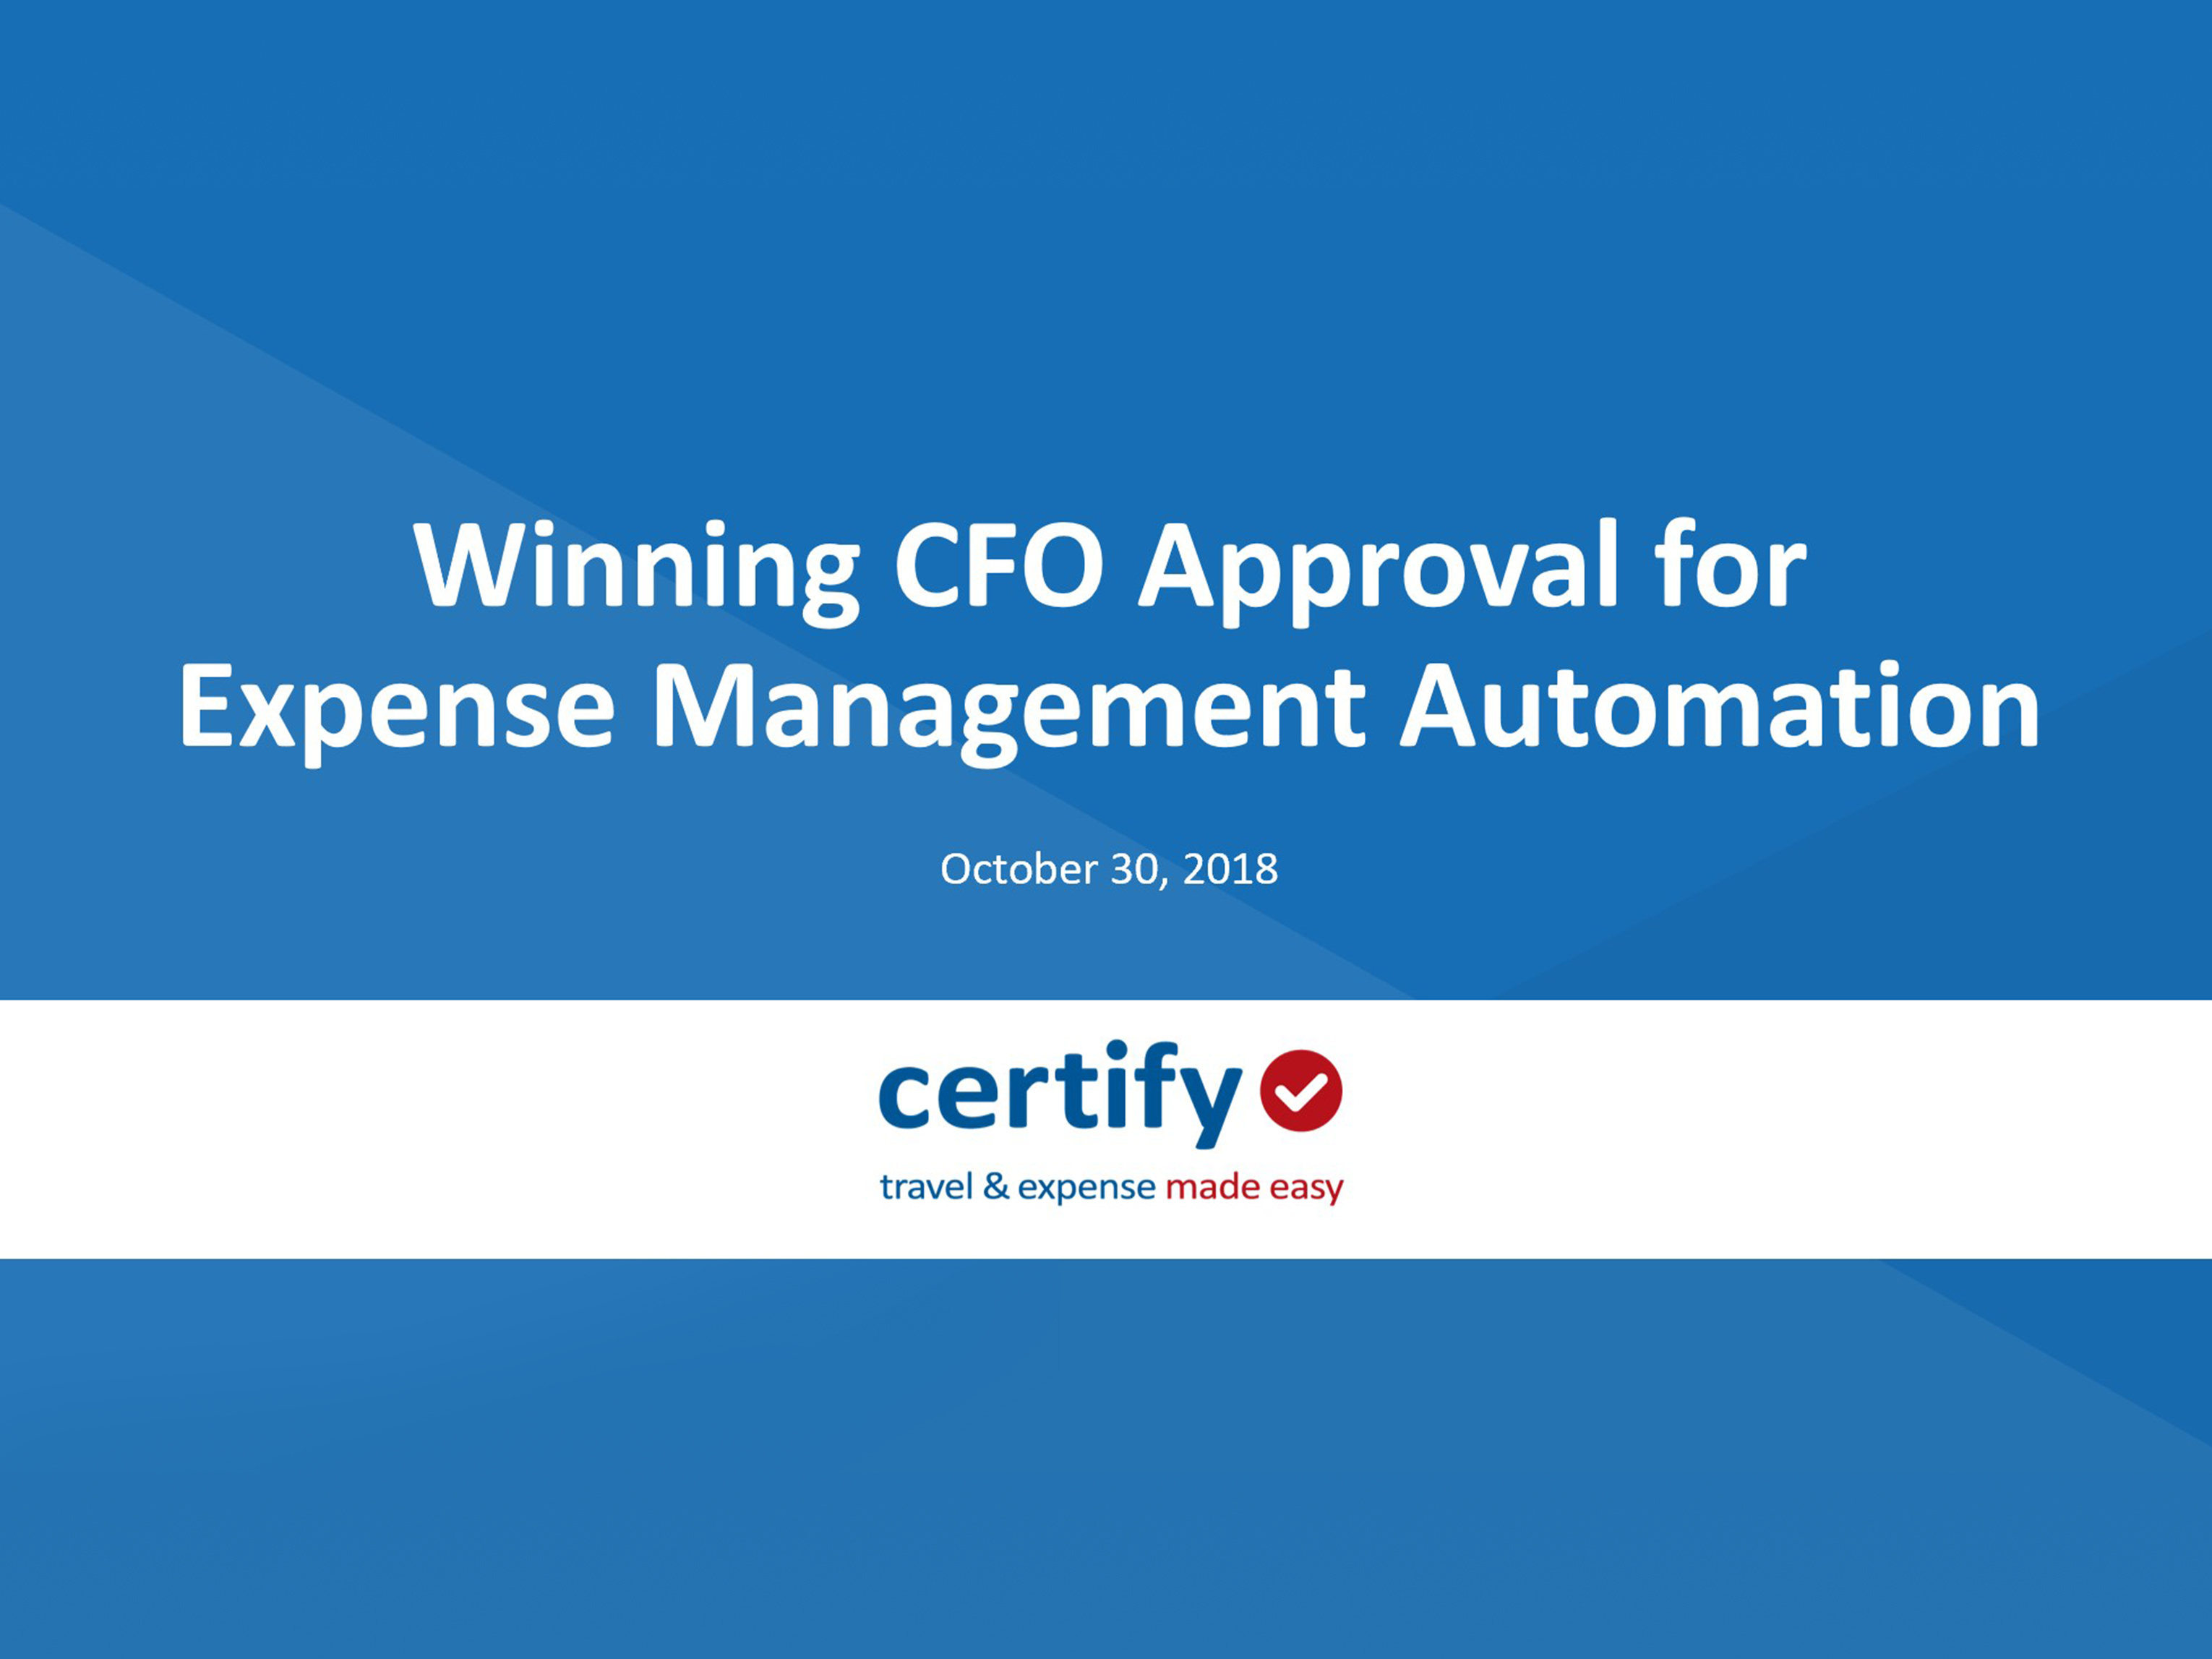 Winning CFO Approval for Expense Management Automation